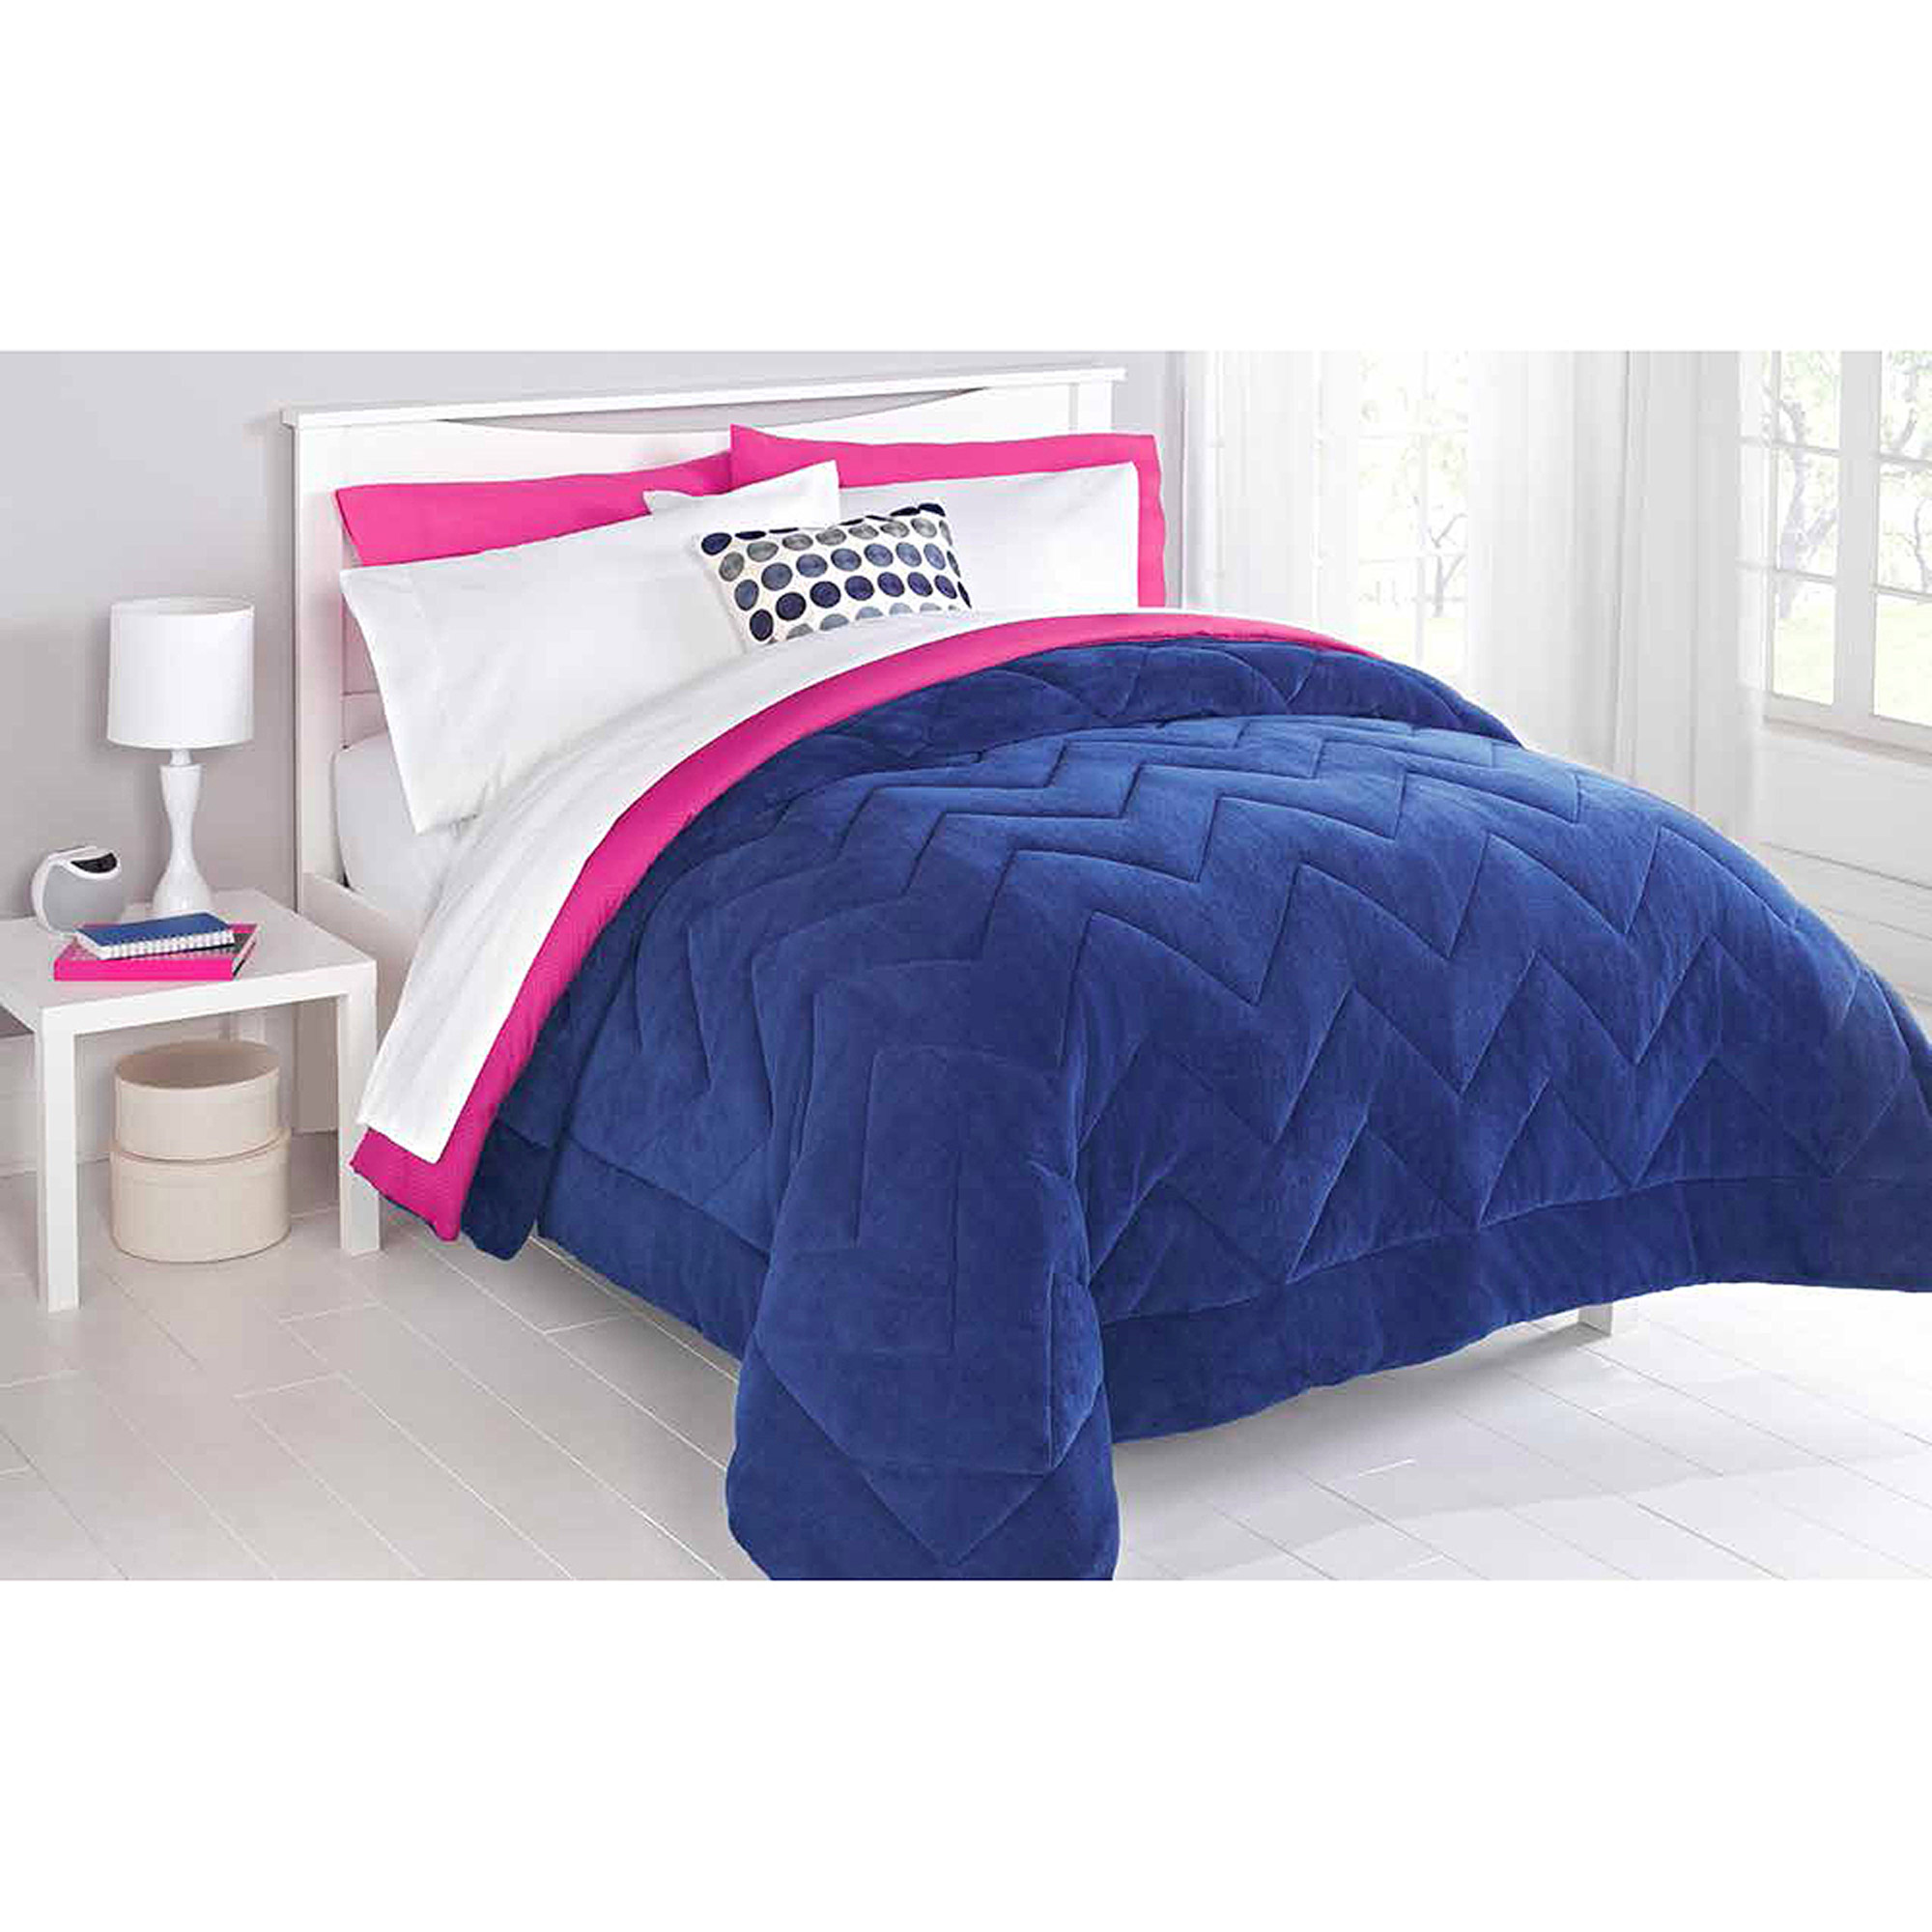 Mainstays Reversible Plush Comforter